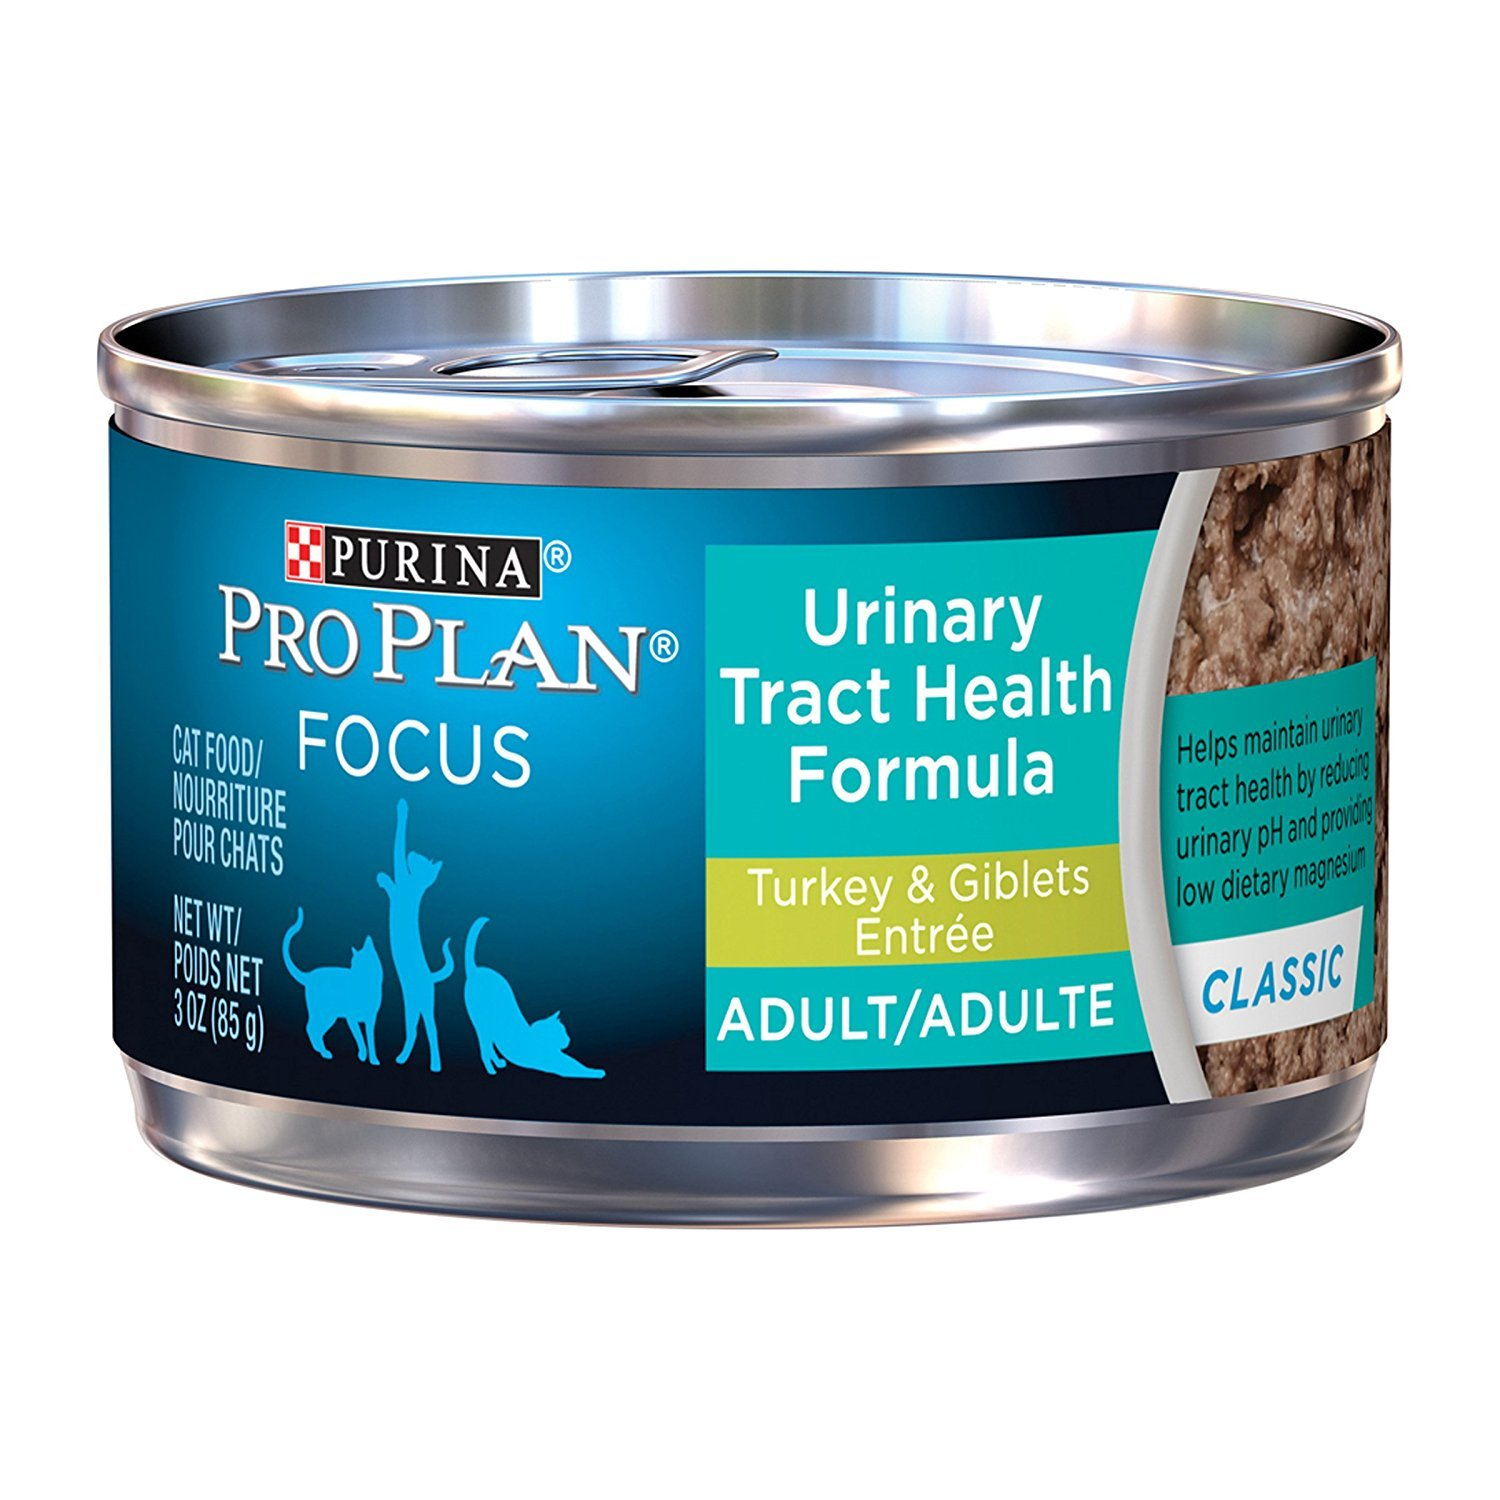 Purina Pro Plan Focus Adult Urinary Tract Health Formula Turkey & Giblets Entree Cat Food, 3 oz EkerVH, 24 Count (3 Pack)